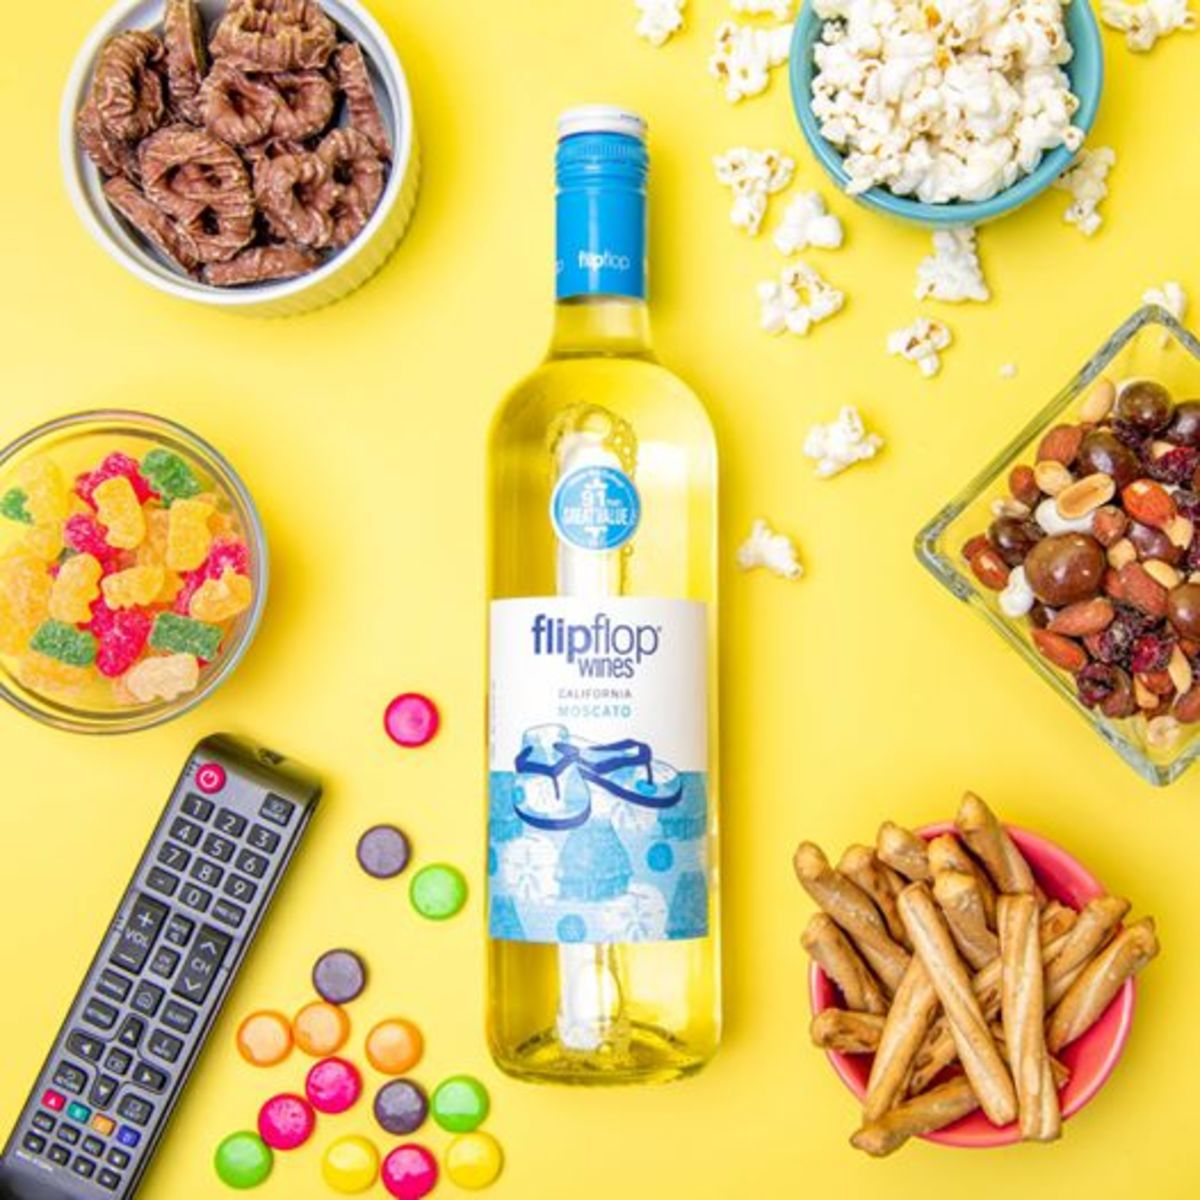 Cheap and Delicious Finds from Flip Flop Wines